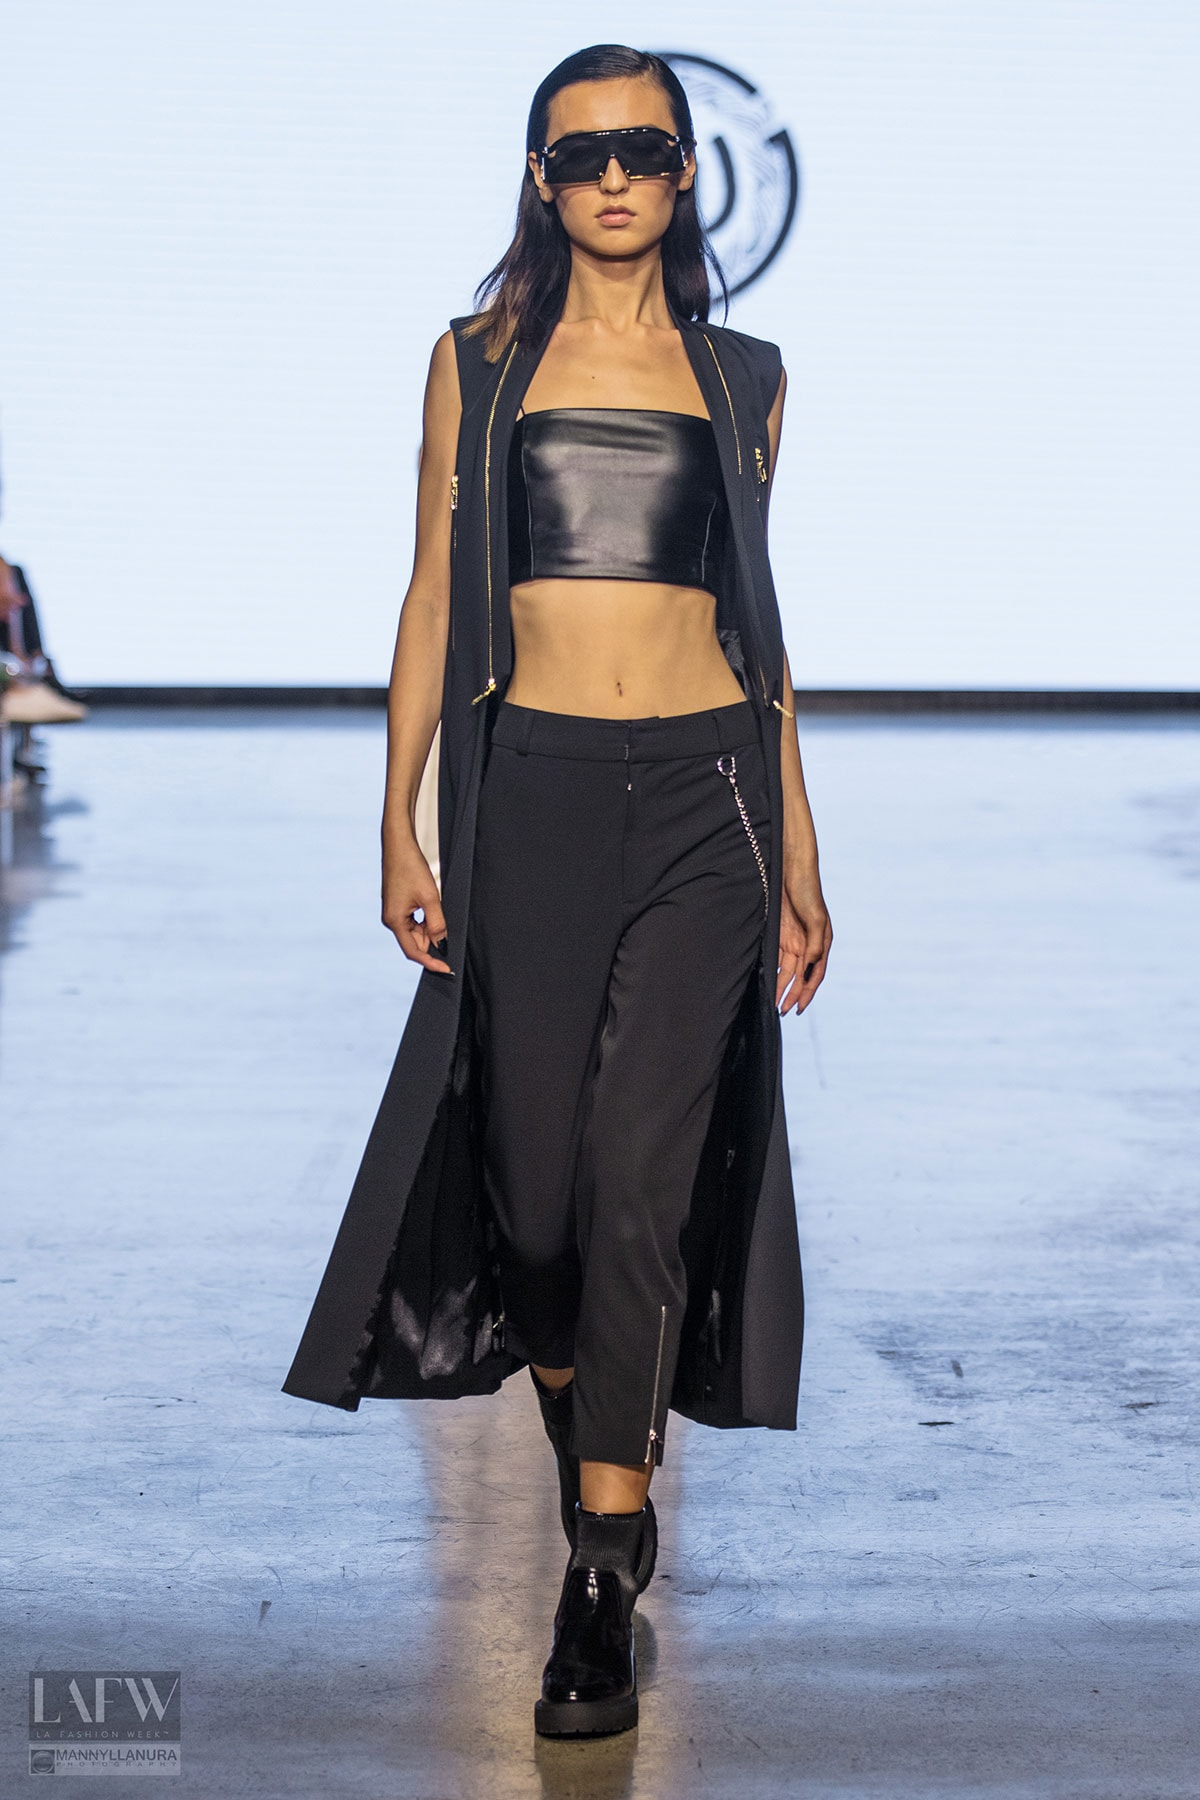 LAFW SS20: The No. J